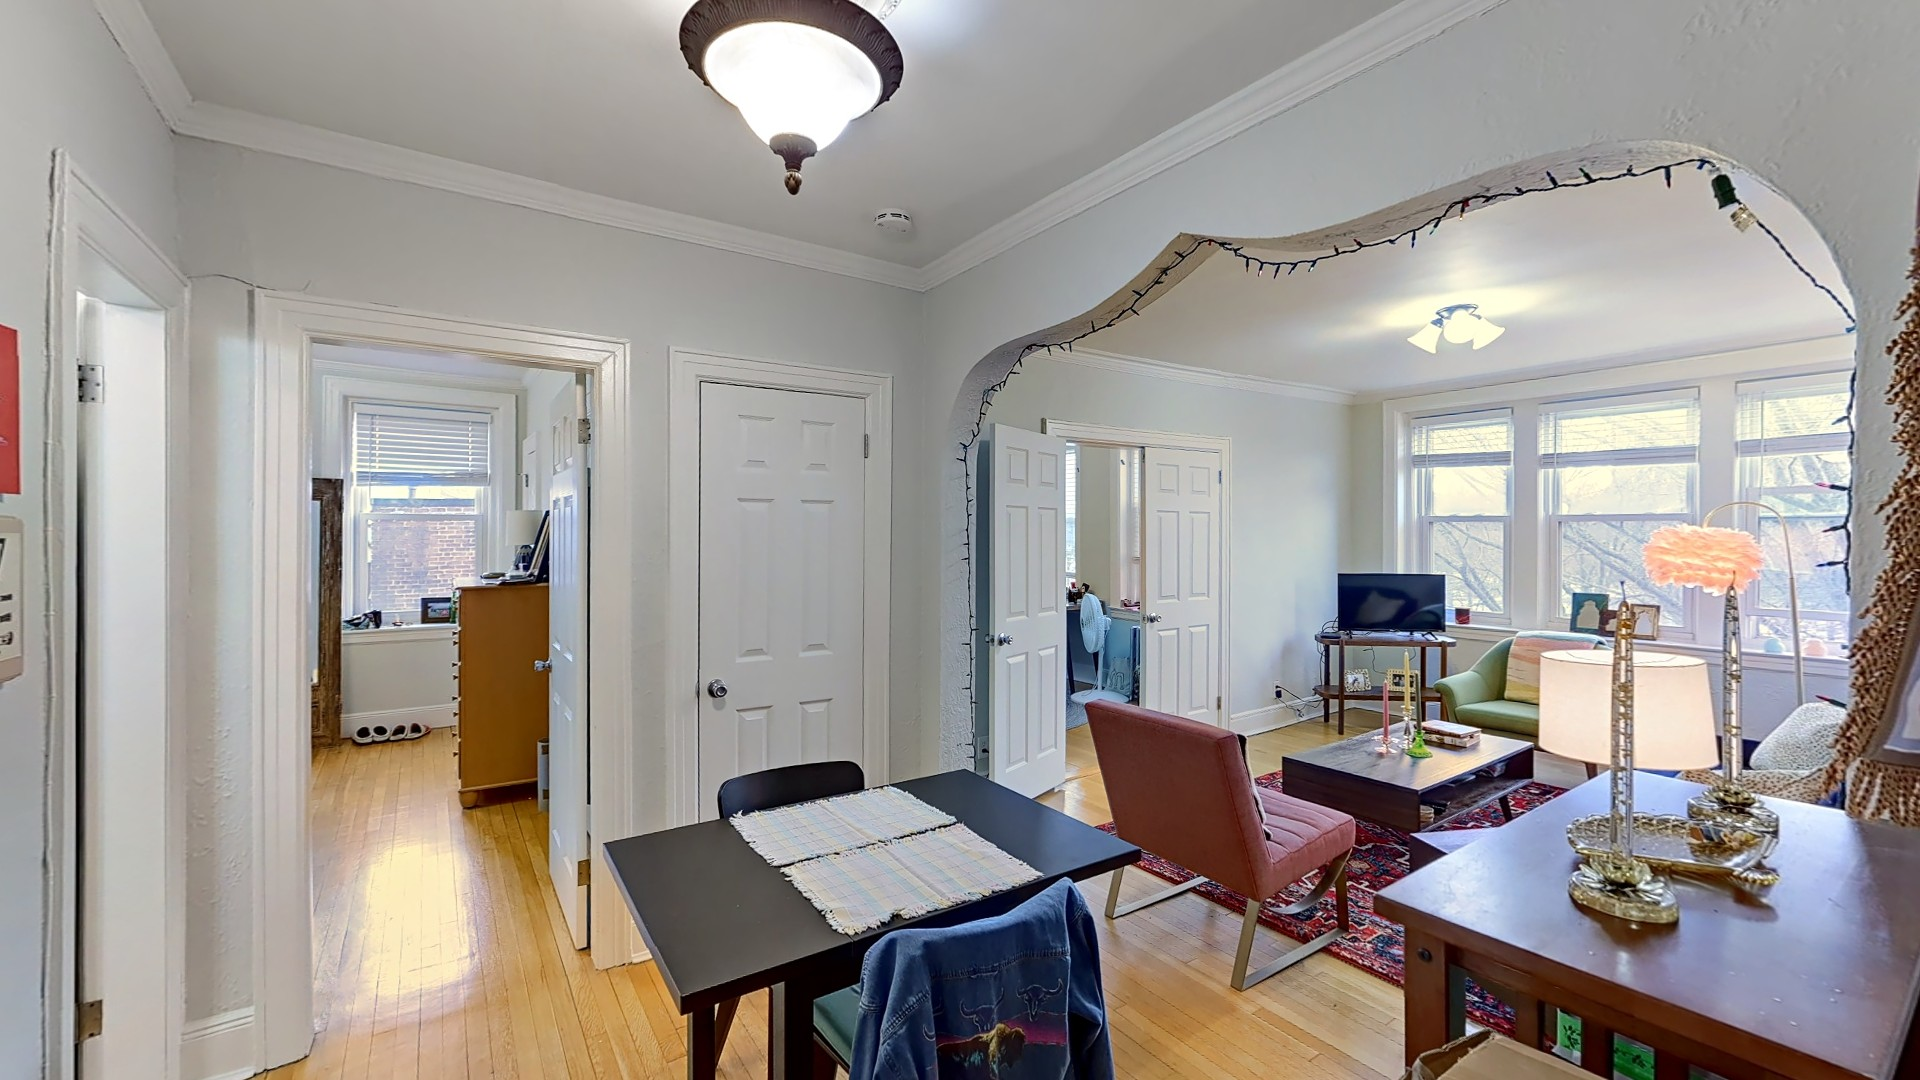 2 Beds, 1 Bath apartment in Boston, Mission Hill for $3,000